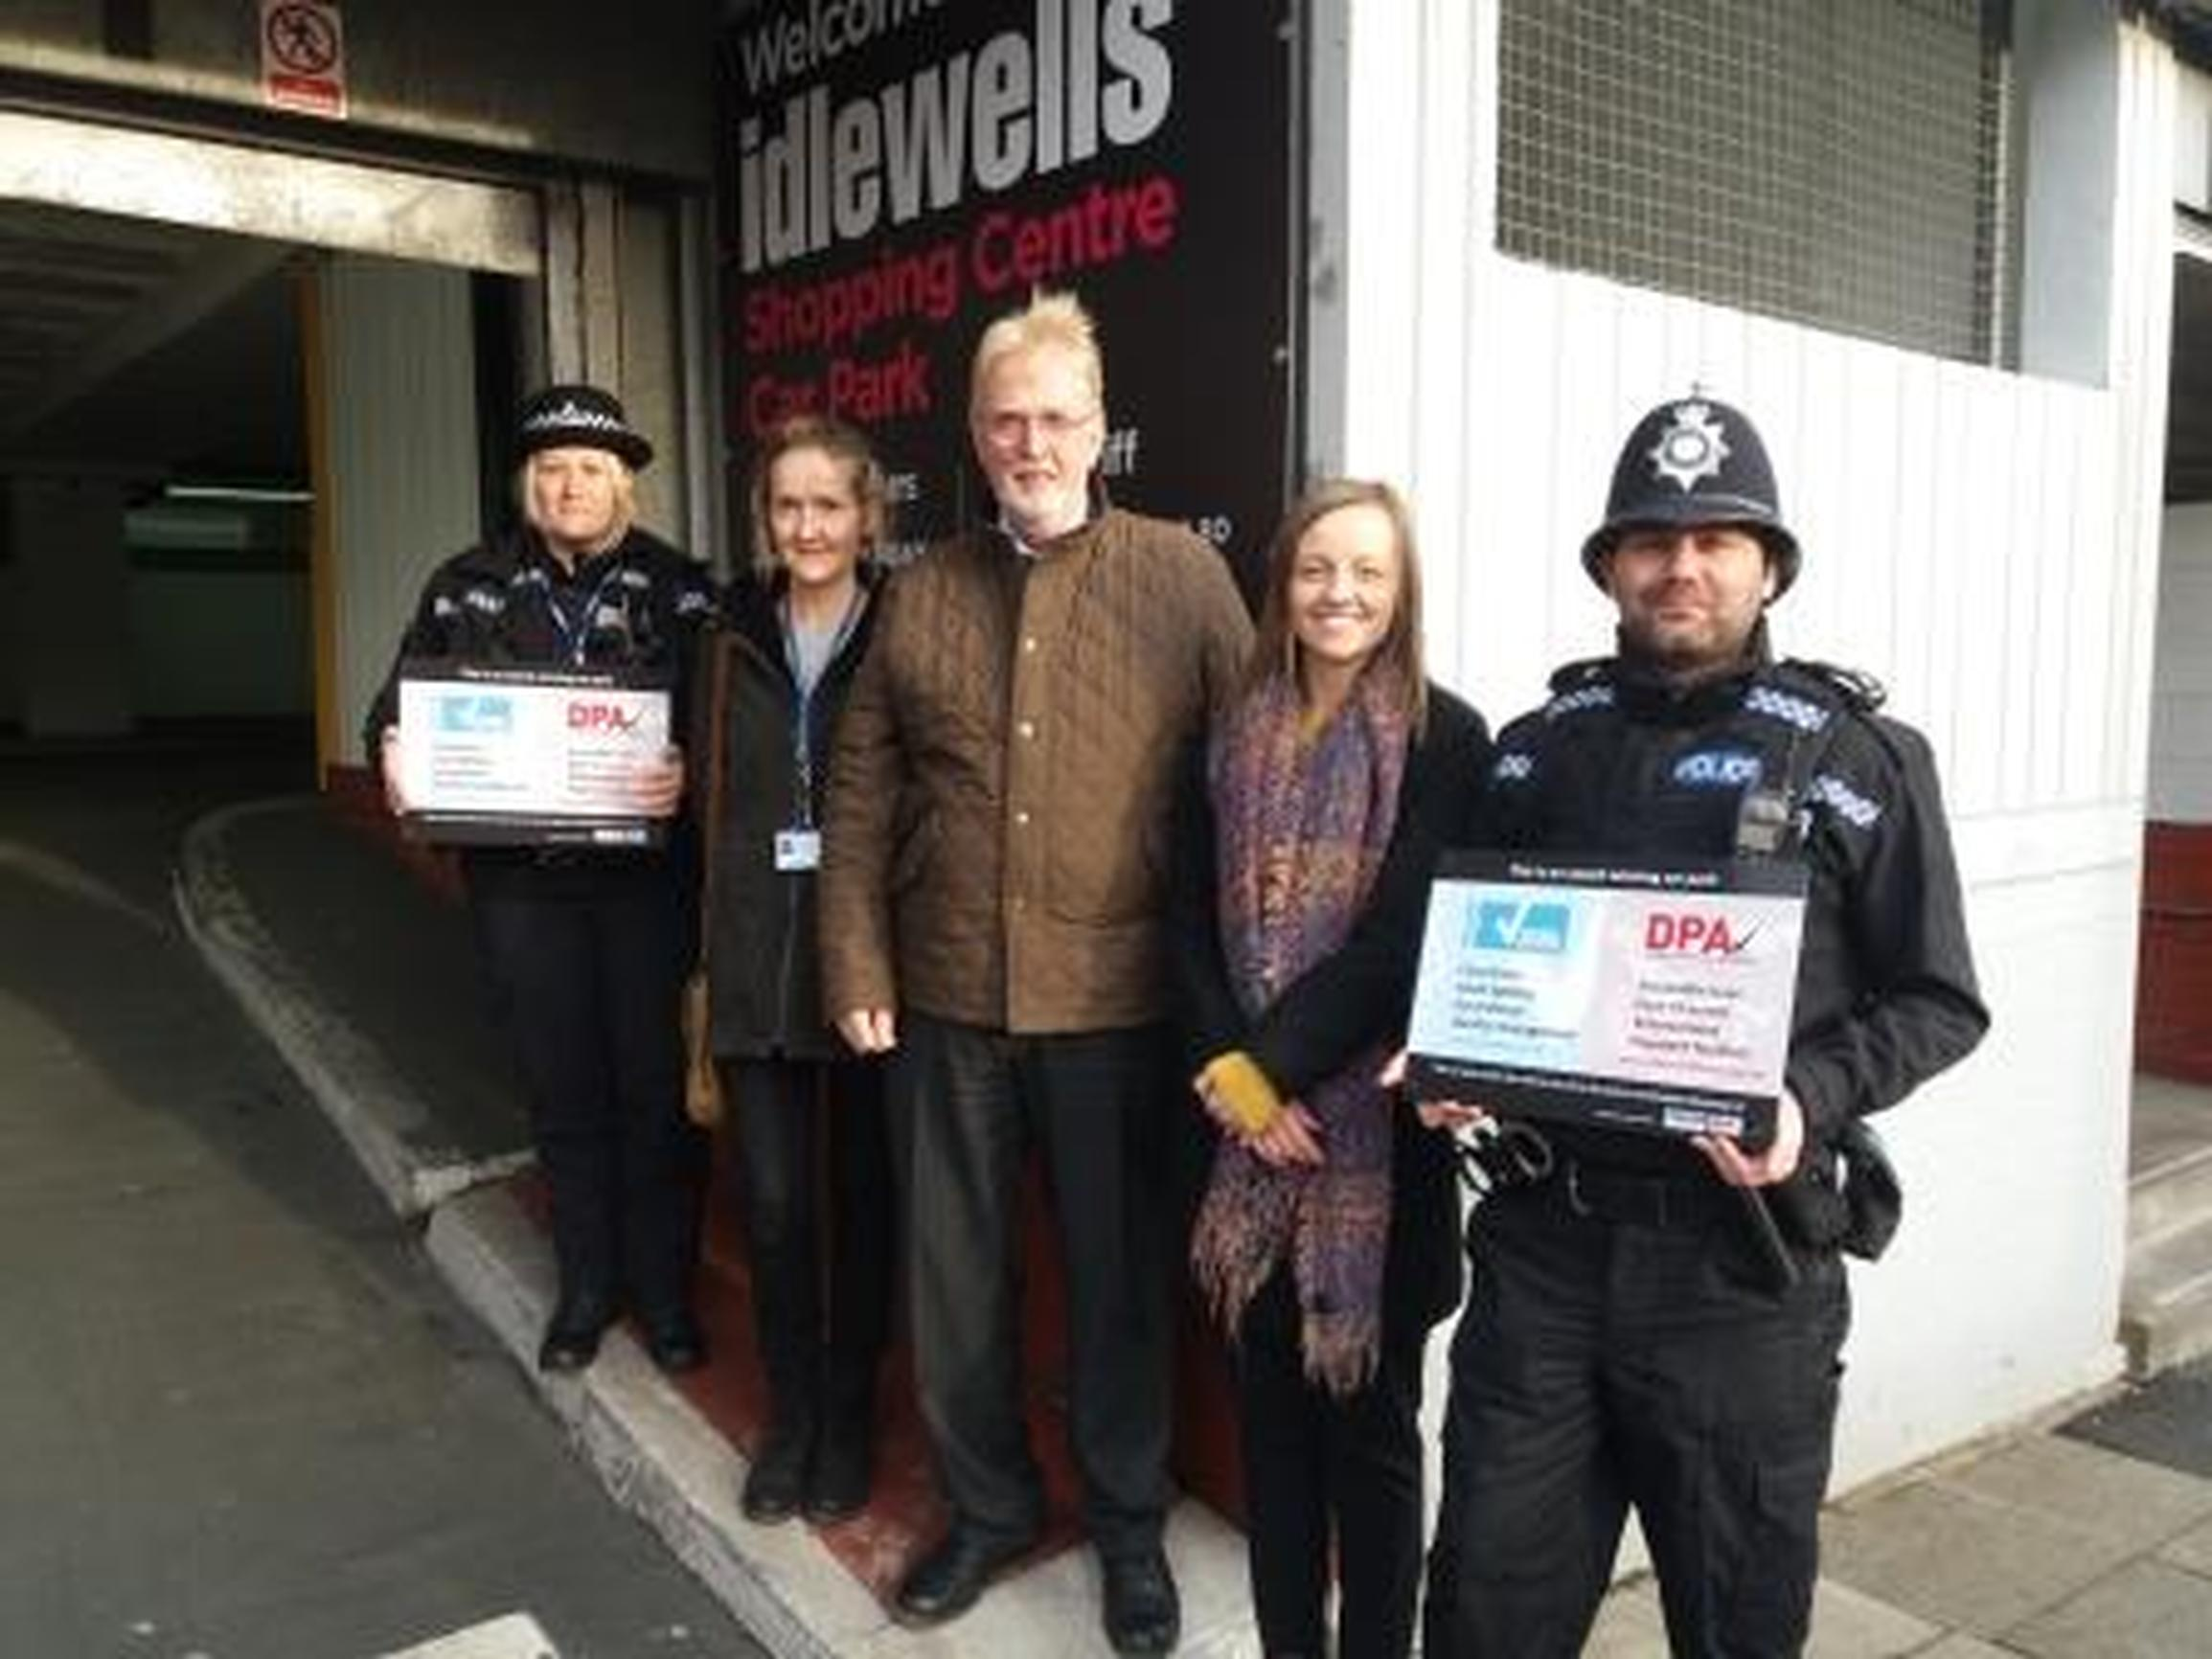 Beat manager PC Julie Armstrong, Notts Police assessor Boguslawa Motylska, BPA area manager Peter Gravells, centre manager Chloe O'Donnell and neighbourhood policing inspector Craig Hall